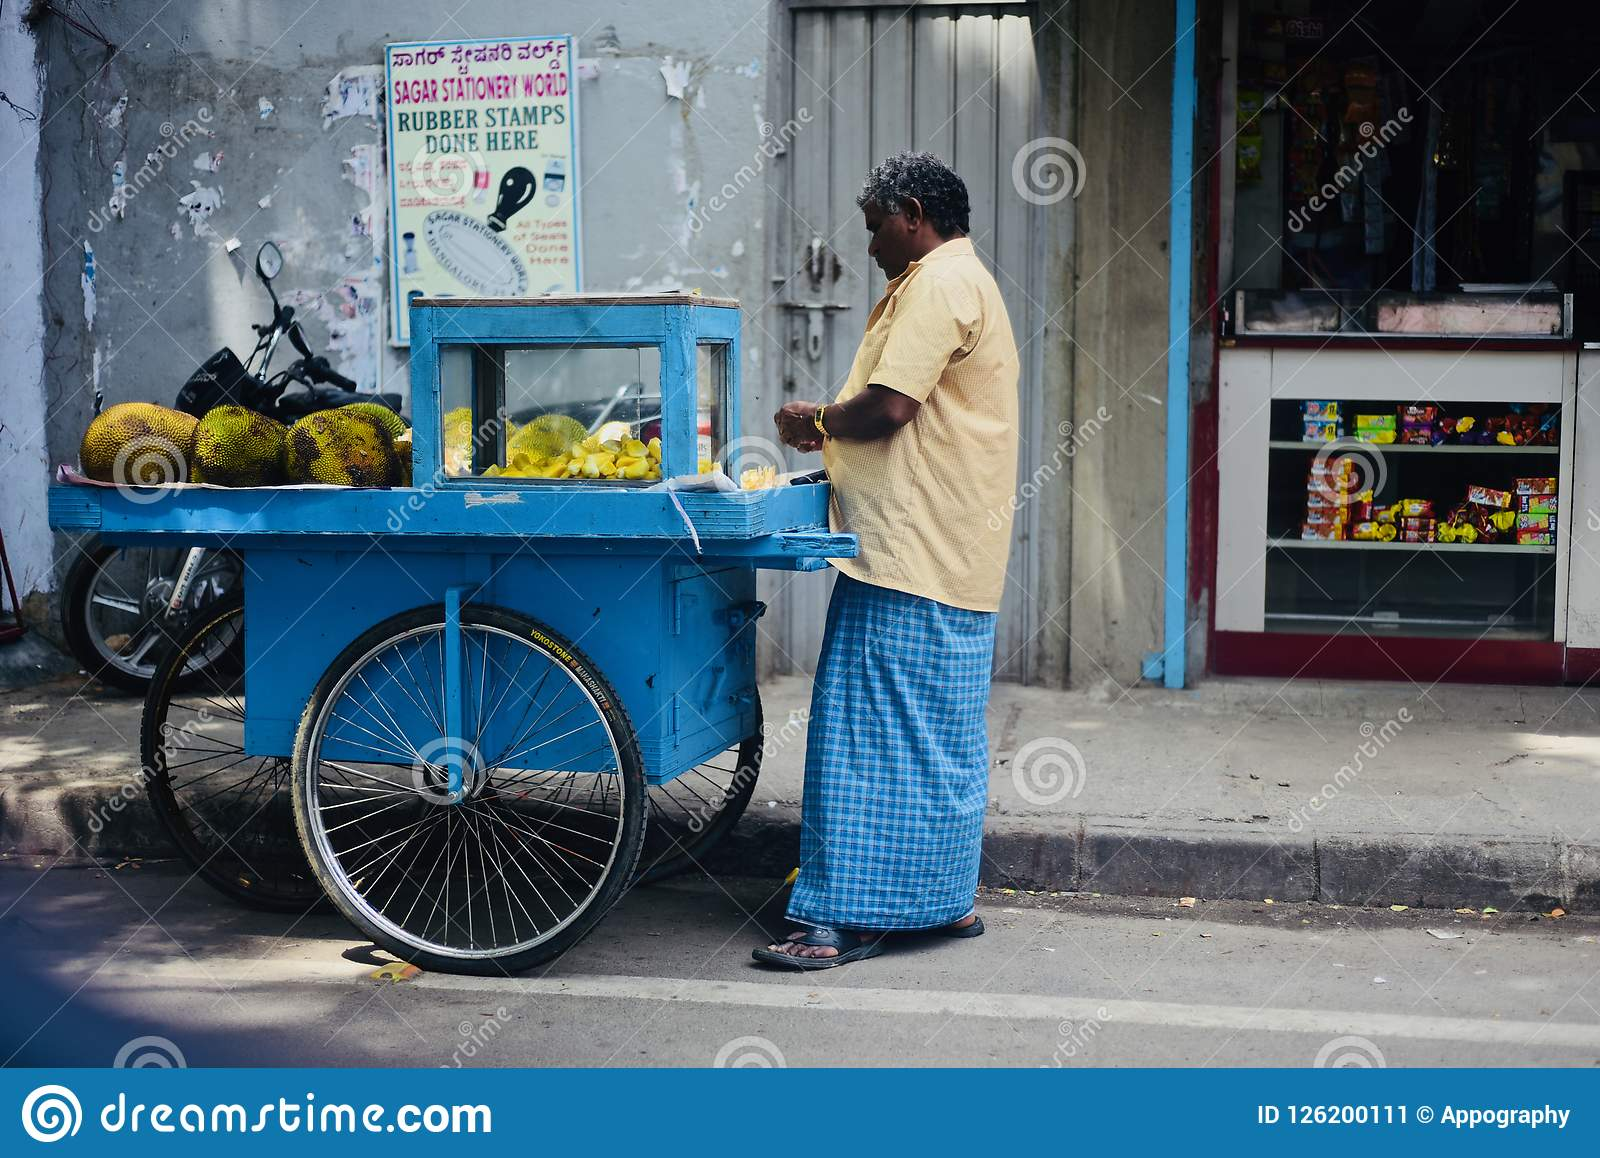 Man selling jackfruits in the street of Bangalore India